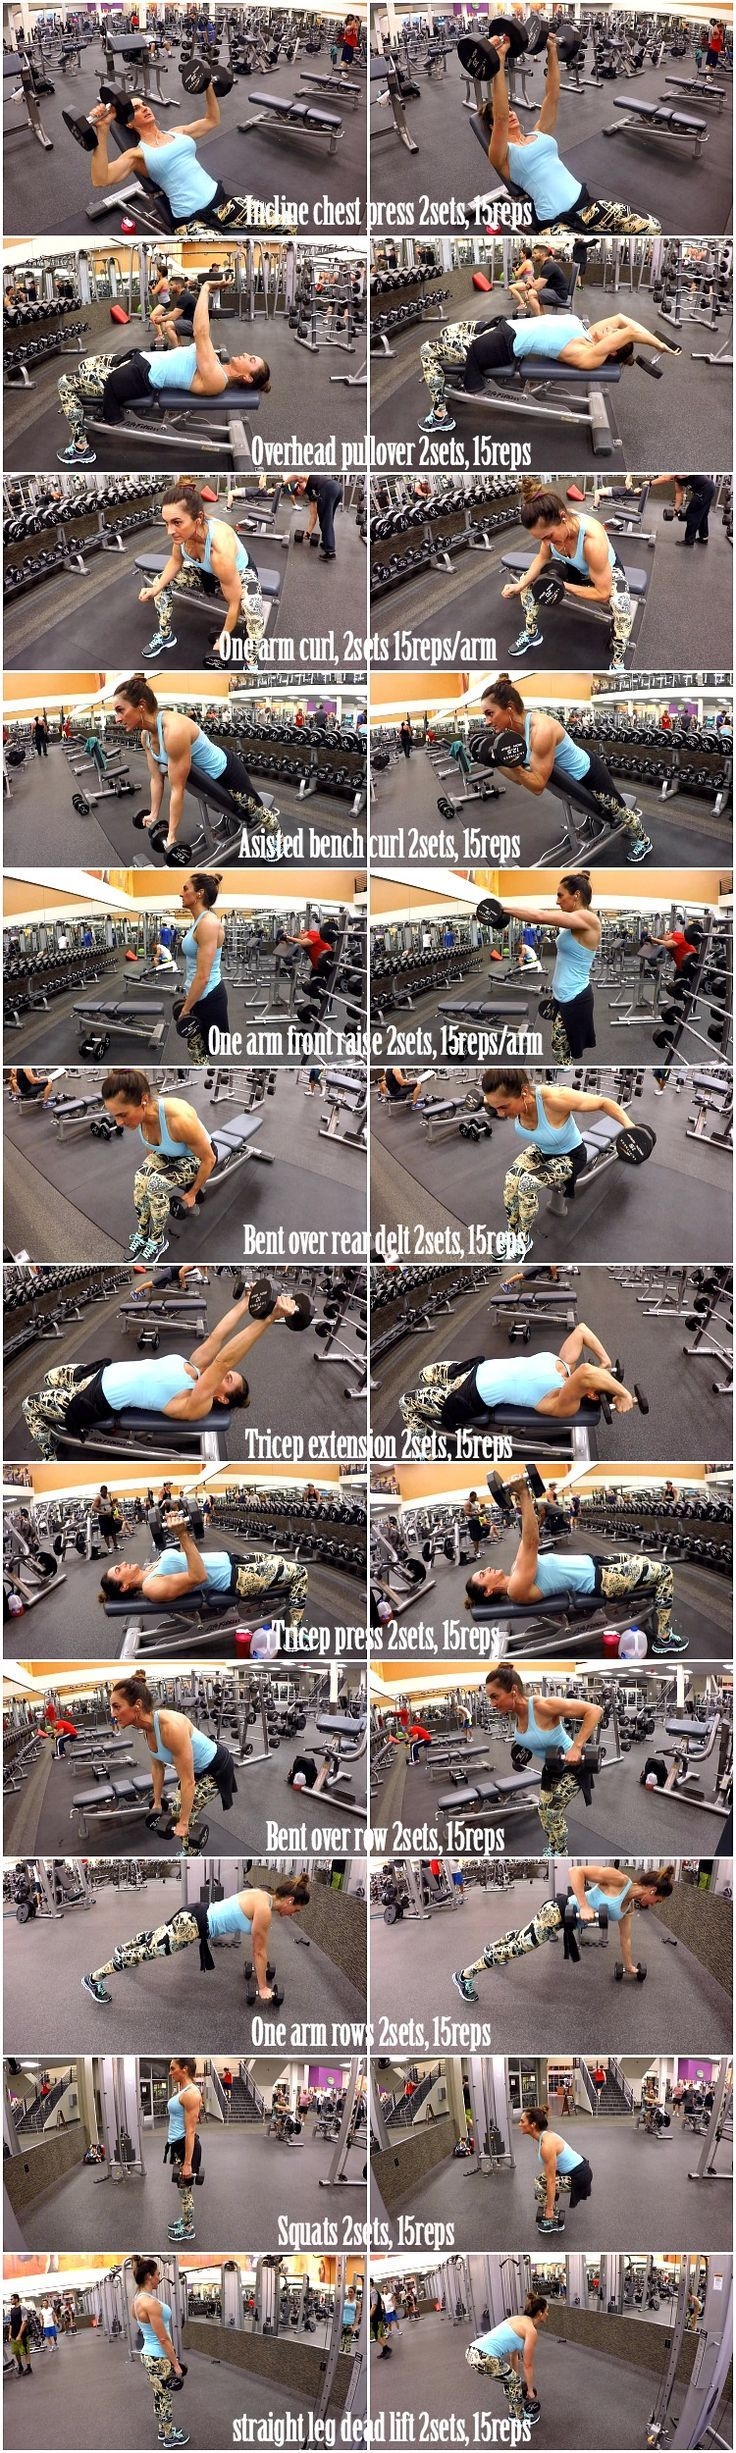 Home Gym - awesome Dumbbell Full Body Workout 2 (Fitness Food Diva) - http://amzn.to/2fSI5XT